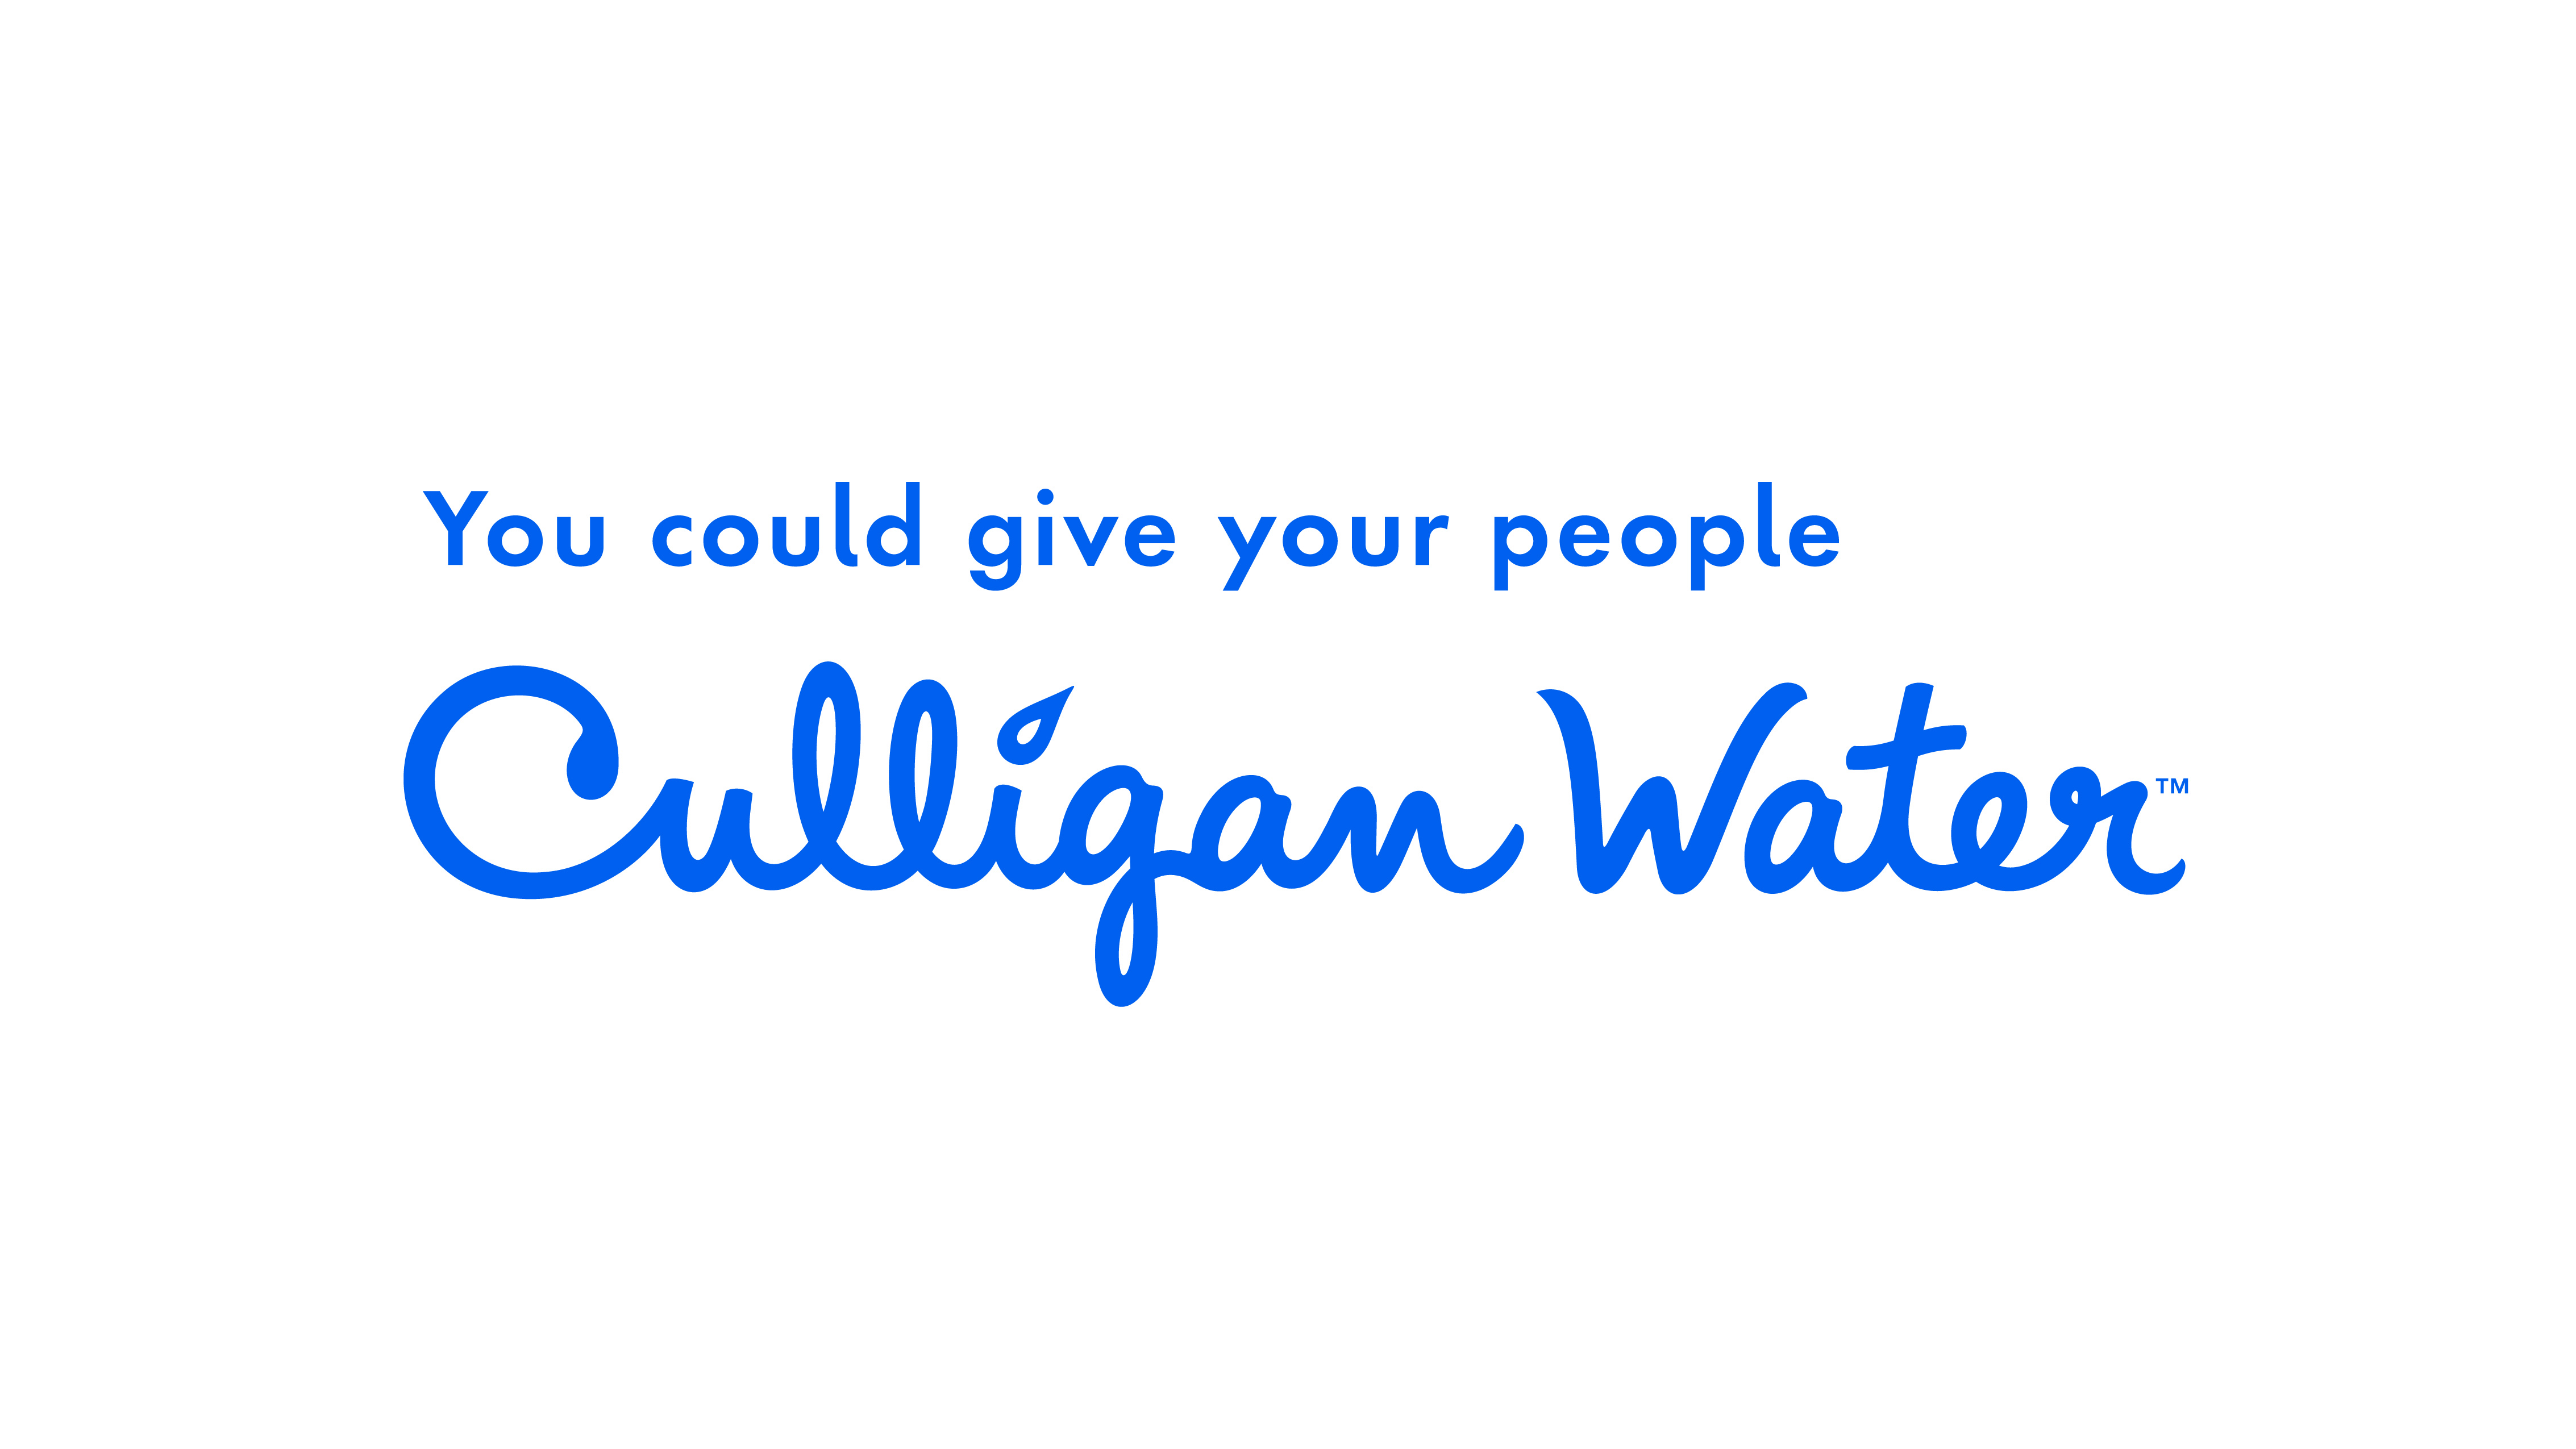 You could give your people Culligan Water; logo.